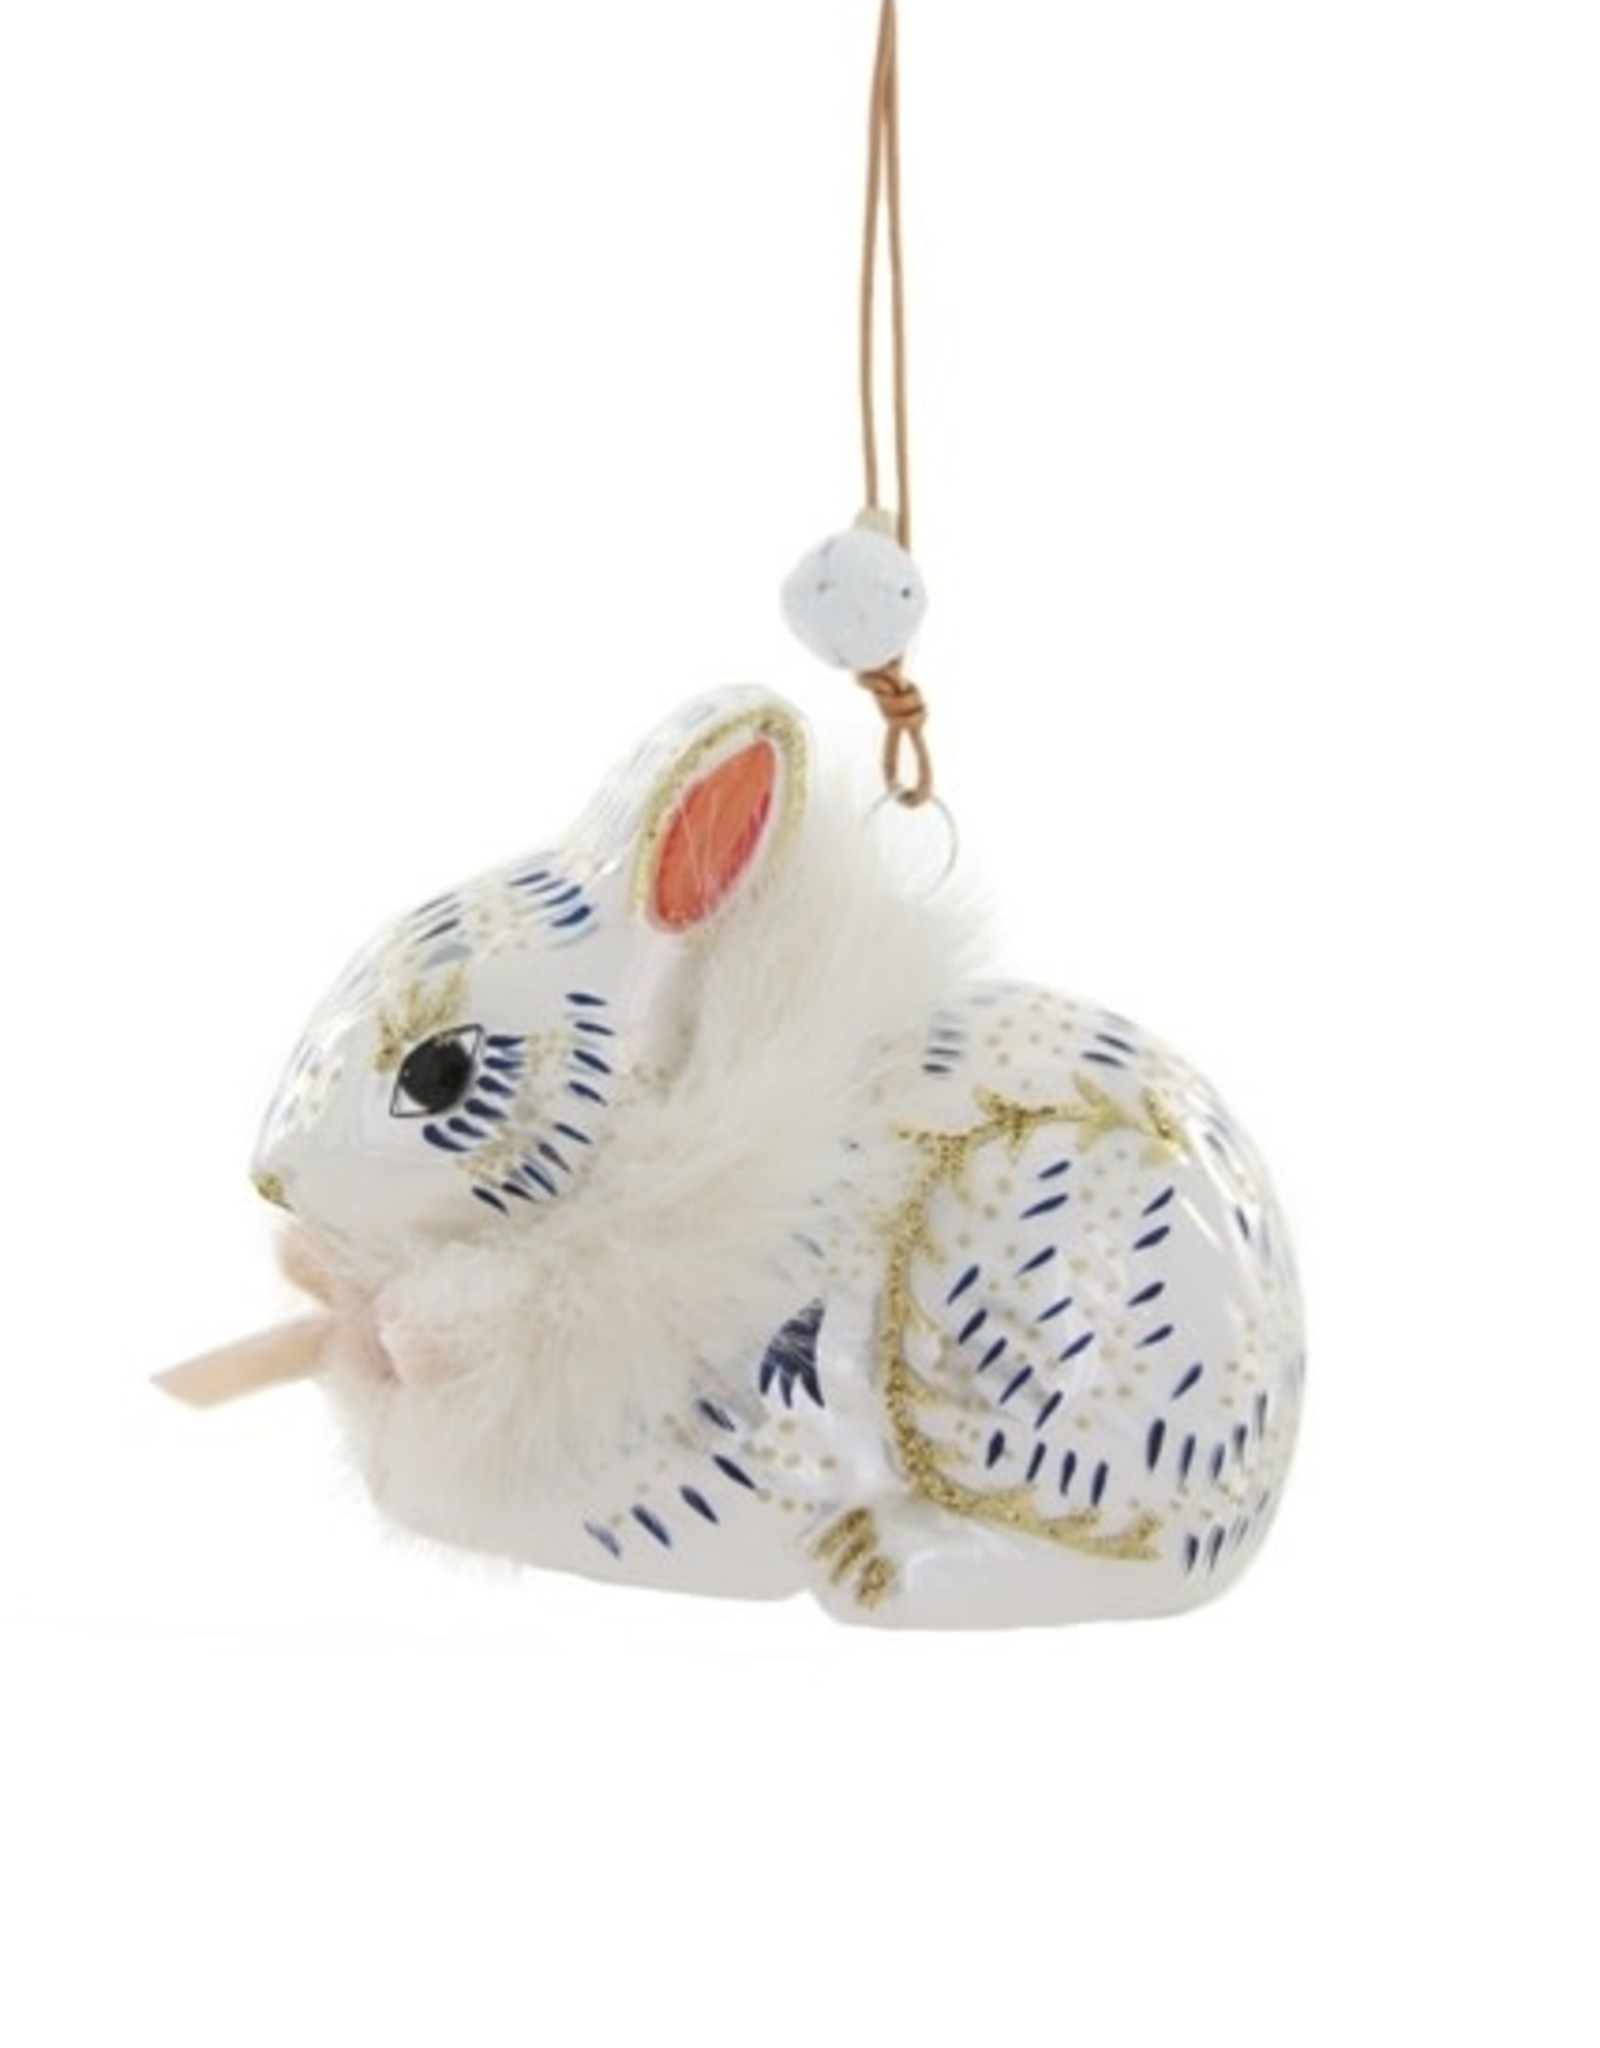 Cody Foster & Co. FROSTED THICKET BUNNY ORNAMENT